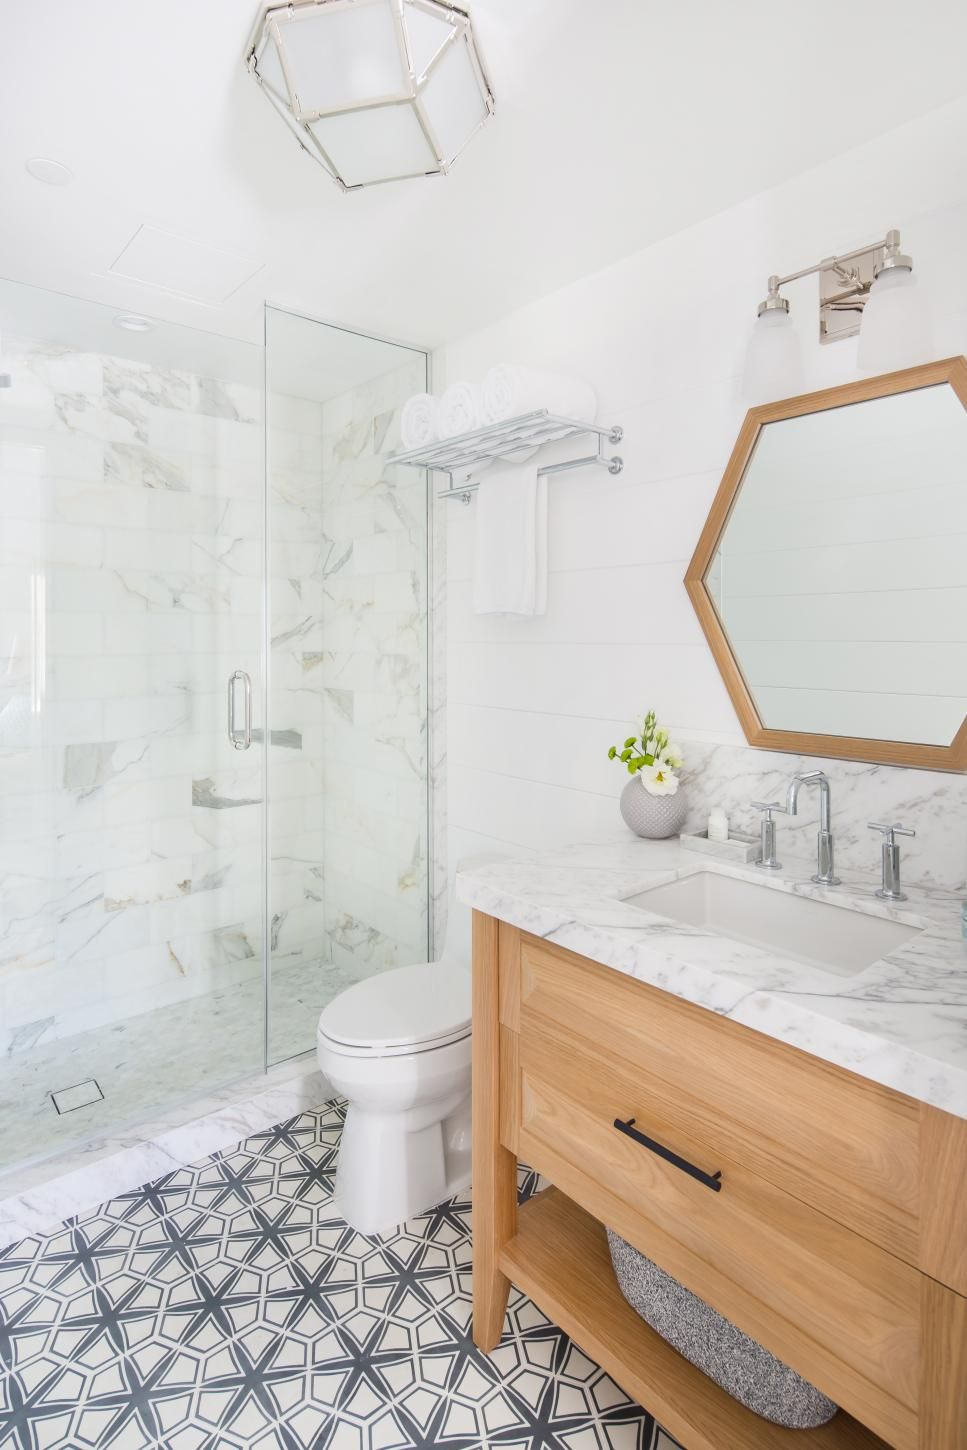 6 Design Trends This Designer Wishes Would End Hgtv Bathroom Redesign Small Bathroom Bathroom Design Small